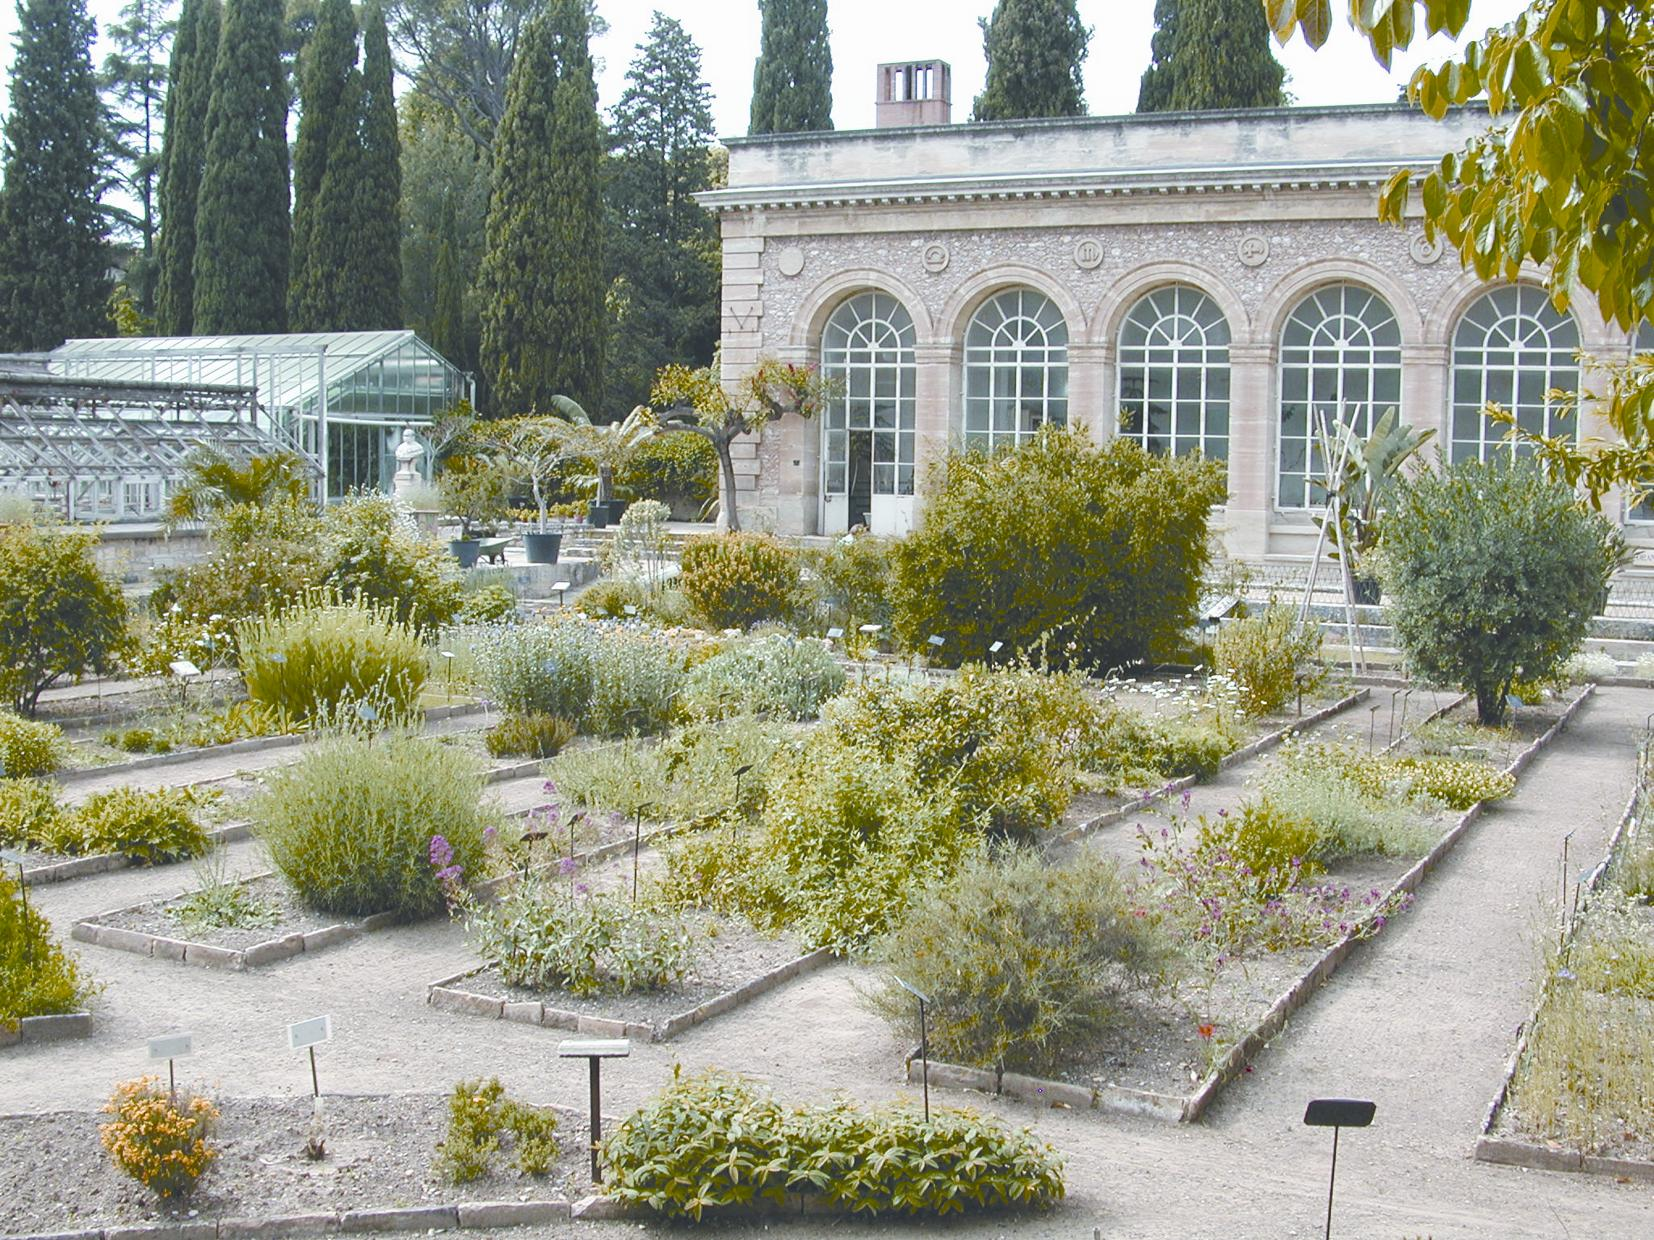 jardin des plantes de montpellier wikipedia. Black Bedroom Furniture Sets. Home Design Ideas